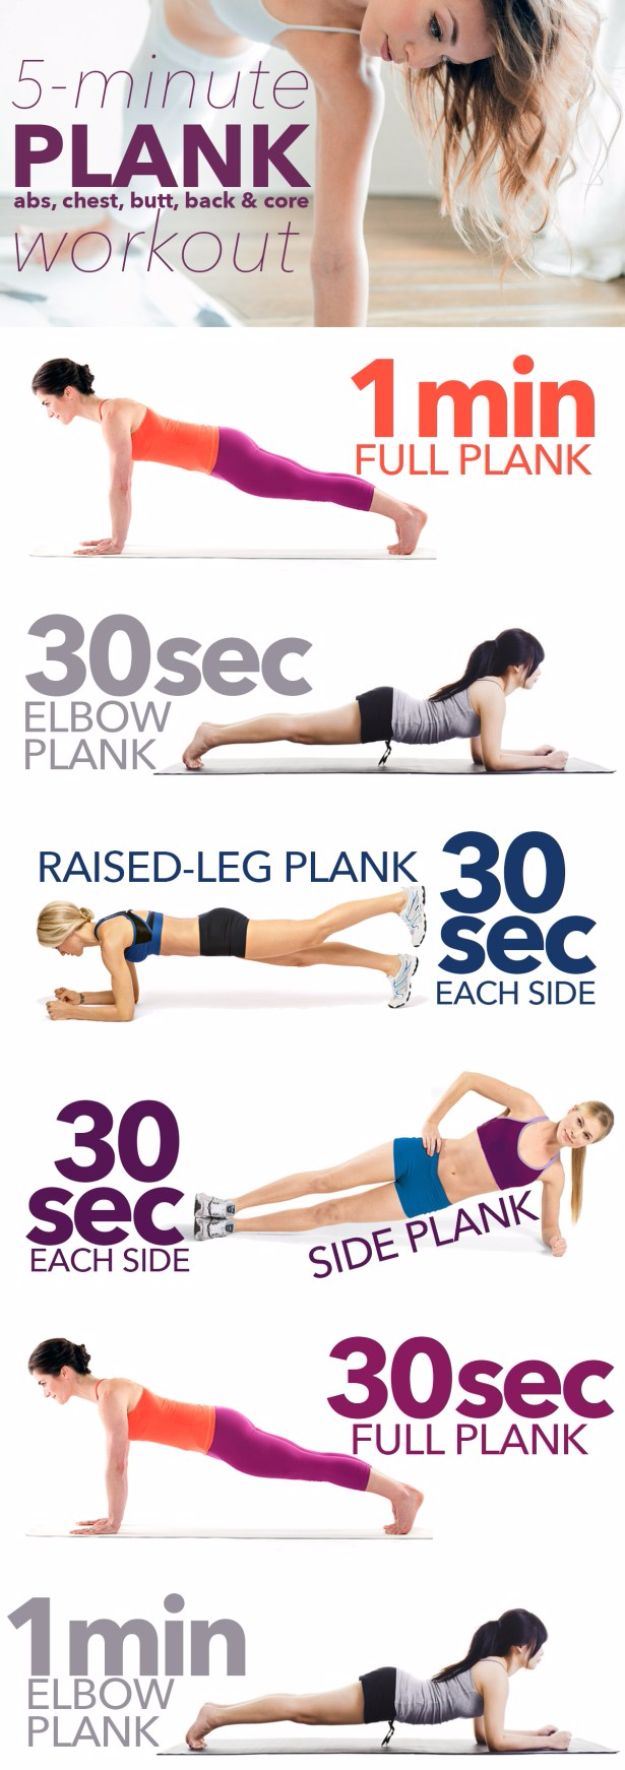 "Best Exercises for 2018 - 5-minute ""Almost-No-Work"" Plank Workout - Easy At Home Exercises - Quick Exercise Tutorials to Try at Lunch Break - Ways To Get In Shape - Butt, Abs, Arms, Legs, Thighs, Tummy"